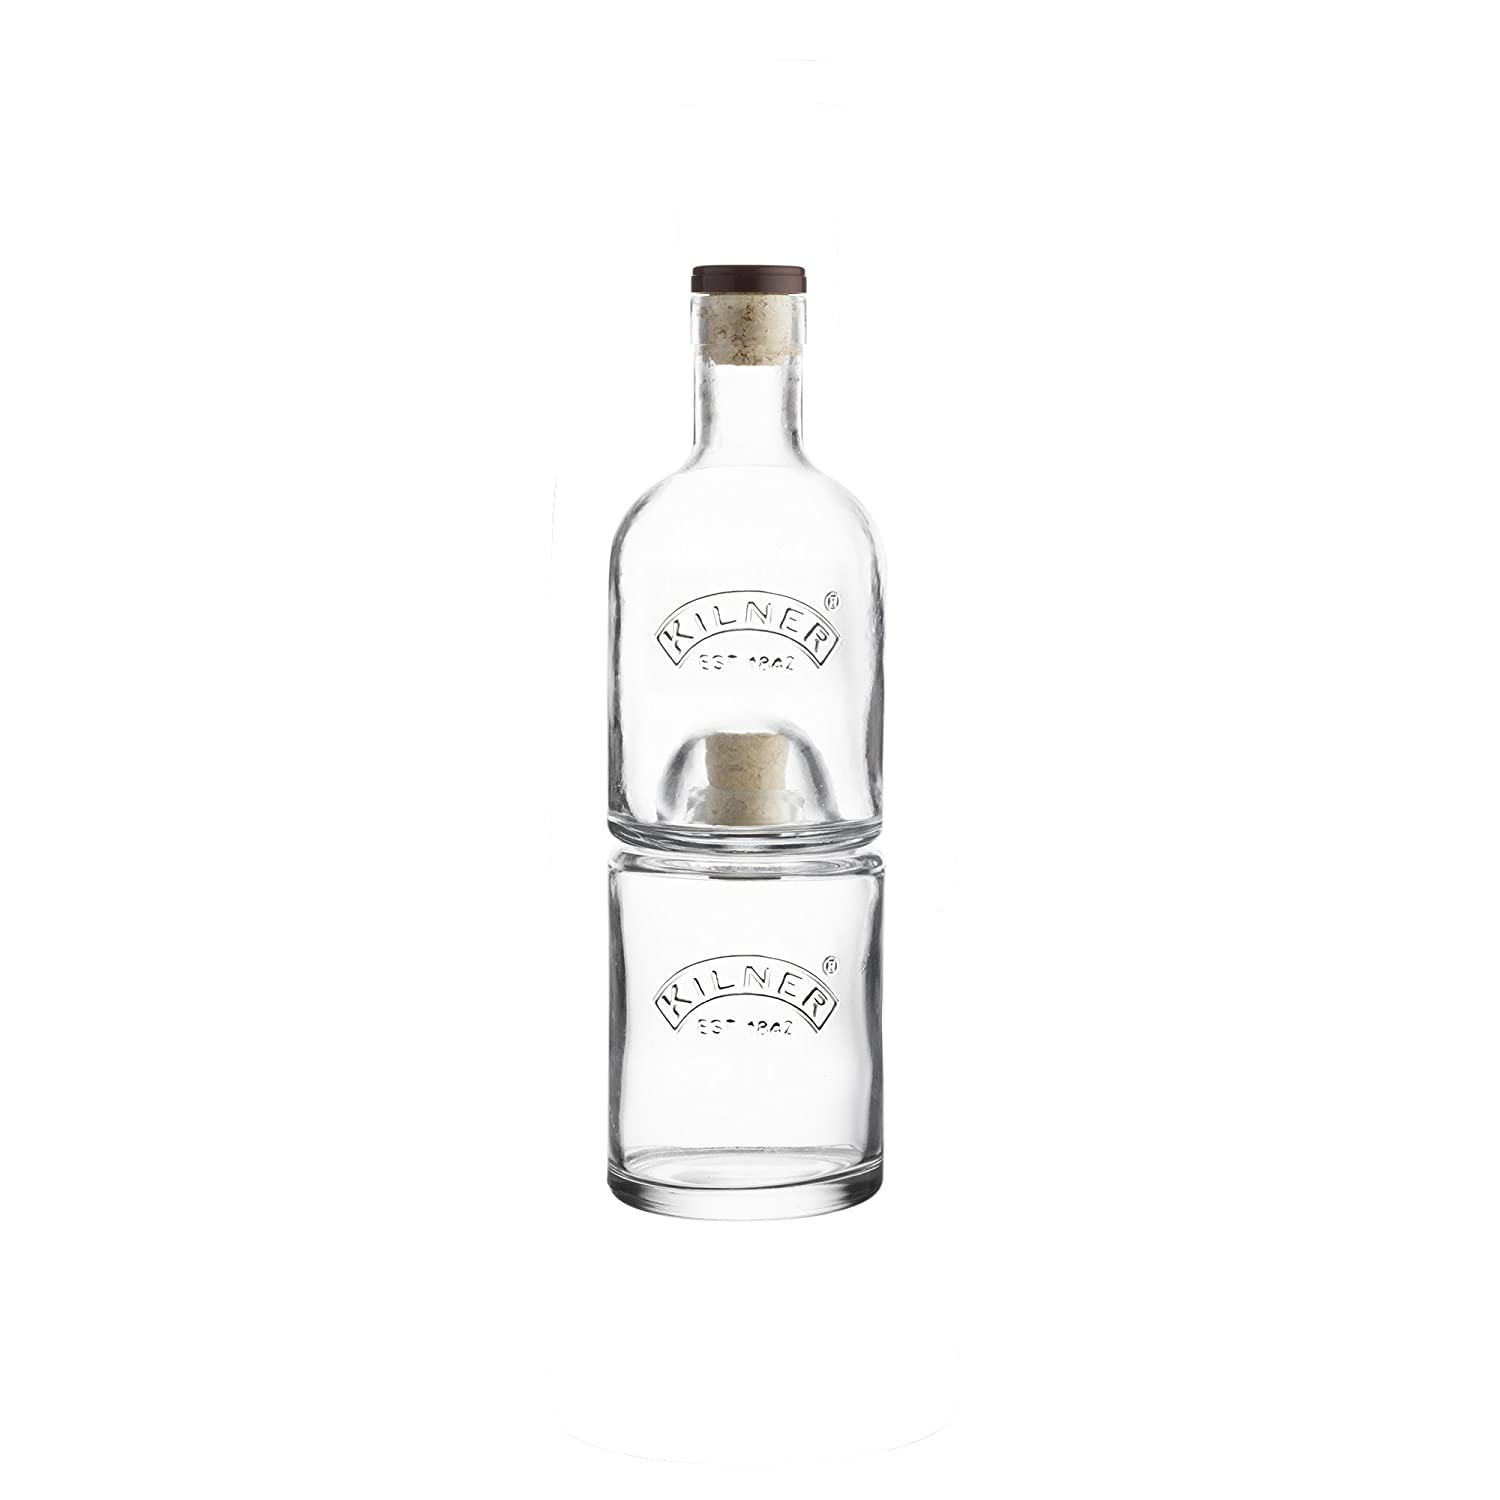 Kilner 2 Piece Stackable Bottle Set Ideal for Storing Oil and Vinegar or Whisky and Water, 10.1 x 10.1 x 30.5 cm 0025.838